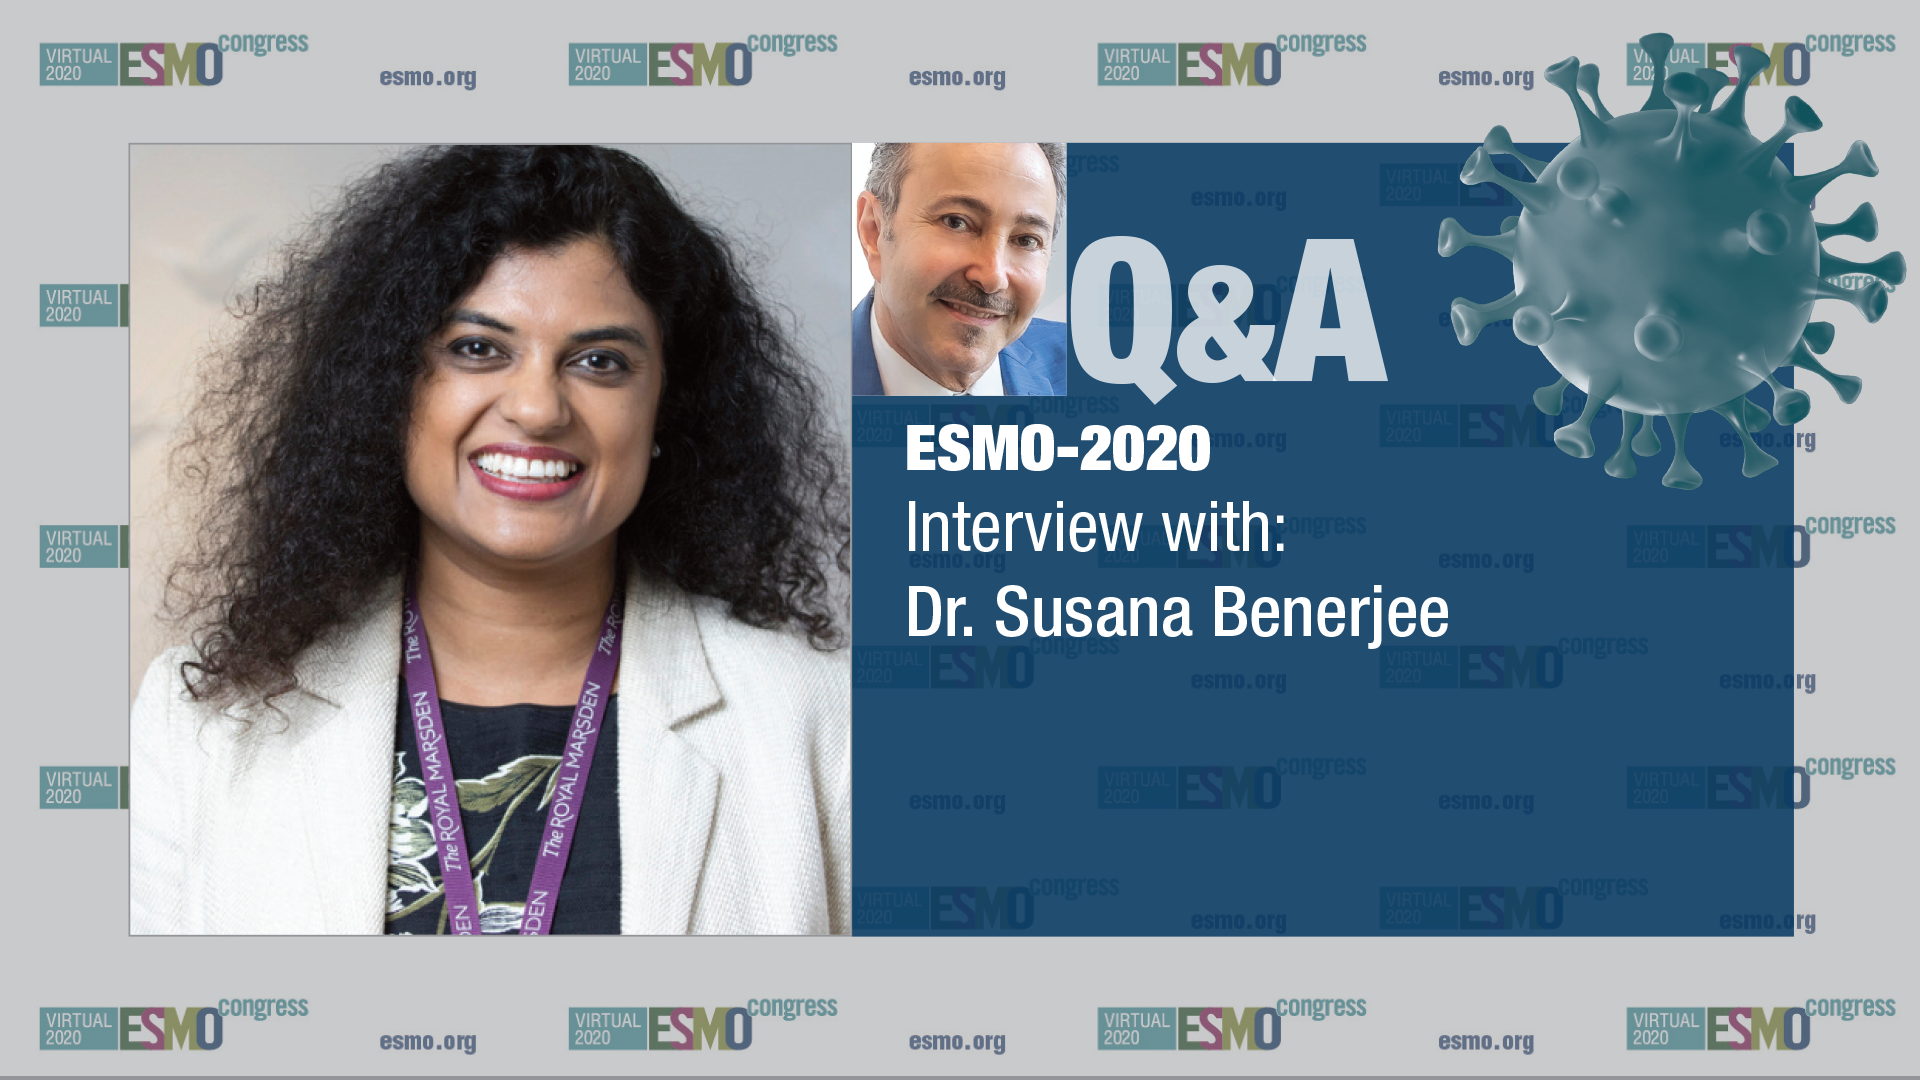 ESMO-2020 - Q&A with Dr. Susana Benerjee - The Impact of COVID-19 on Oncology Professionals: Initial Results of The ESMO Resilience Task Force Survey Collaboration